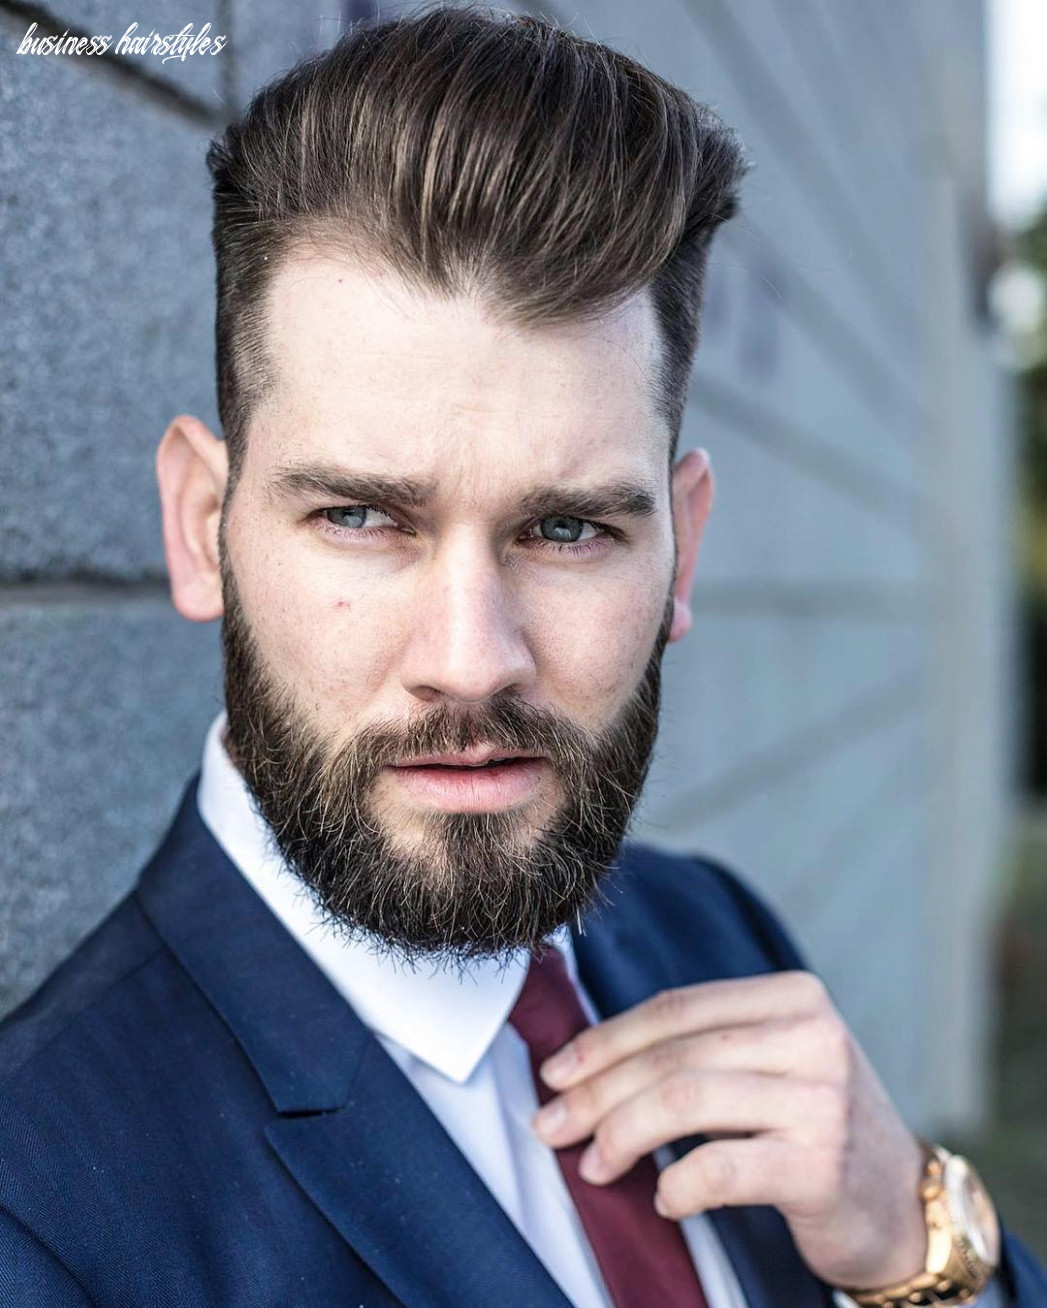 Top 11 business hairstyles for men business hairstyles